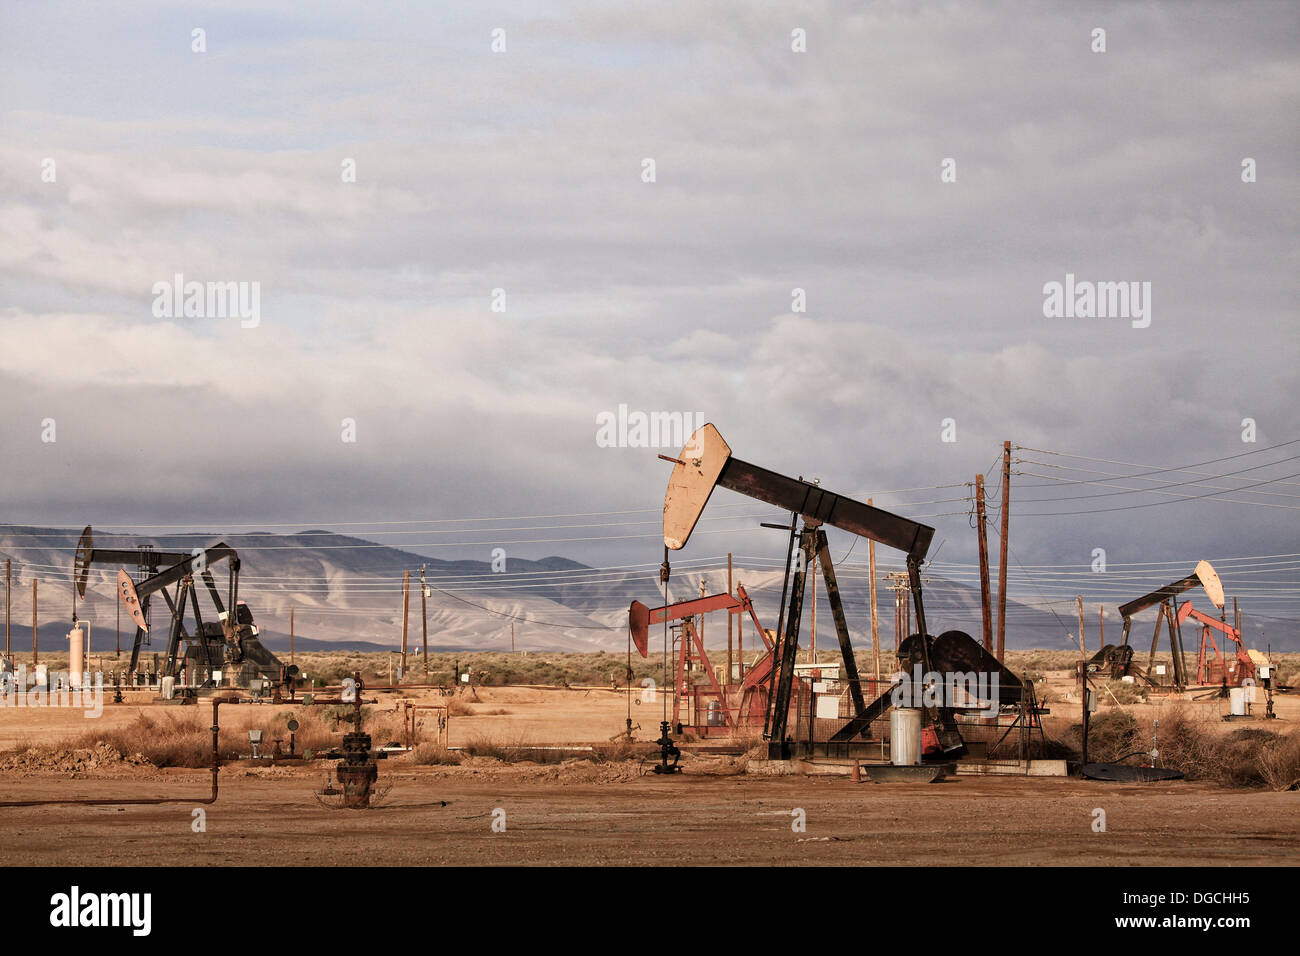 Derricks in oil well, California - Stock Image